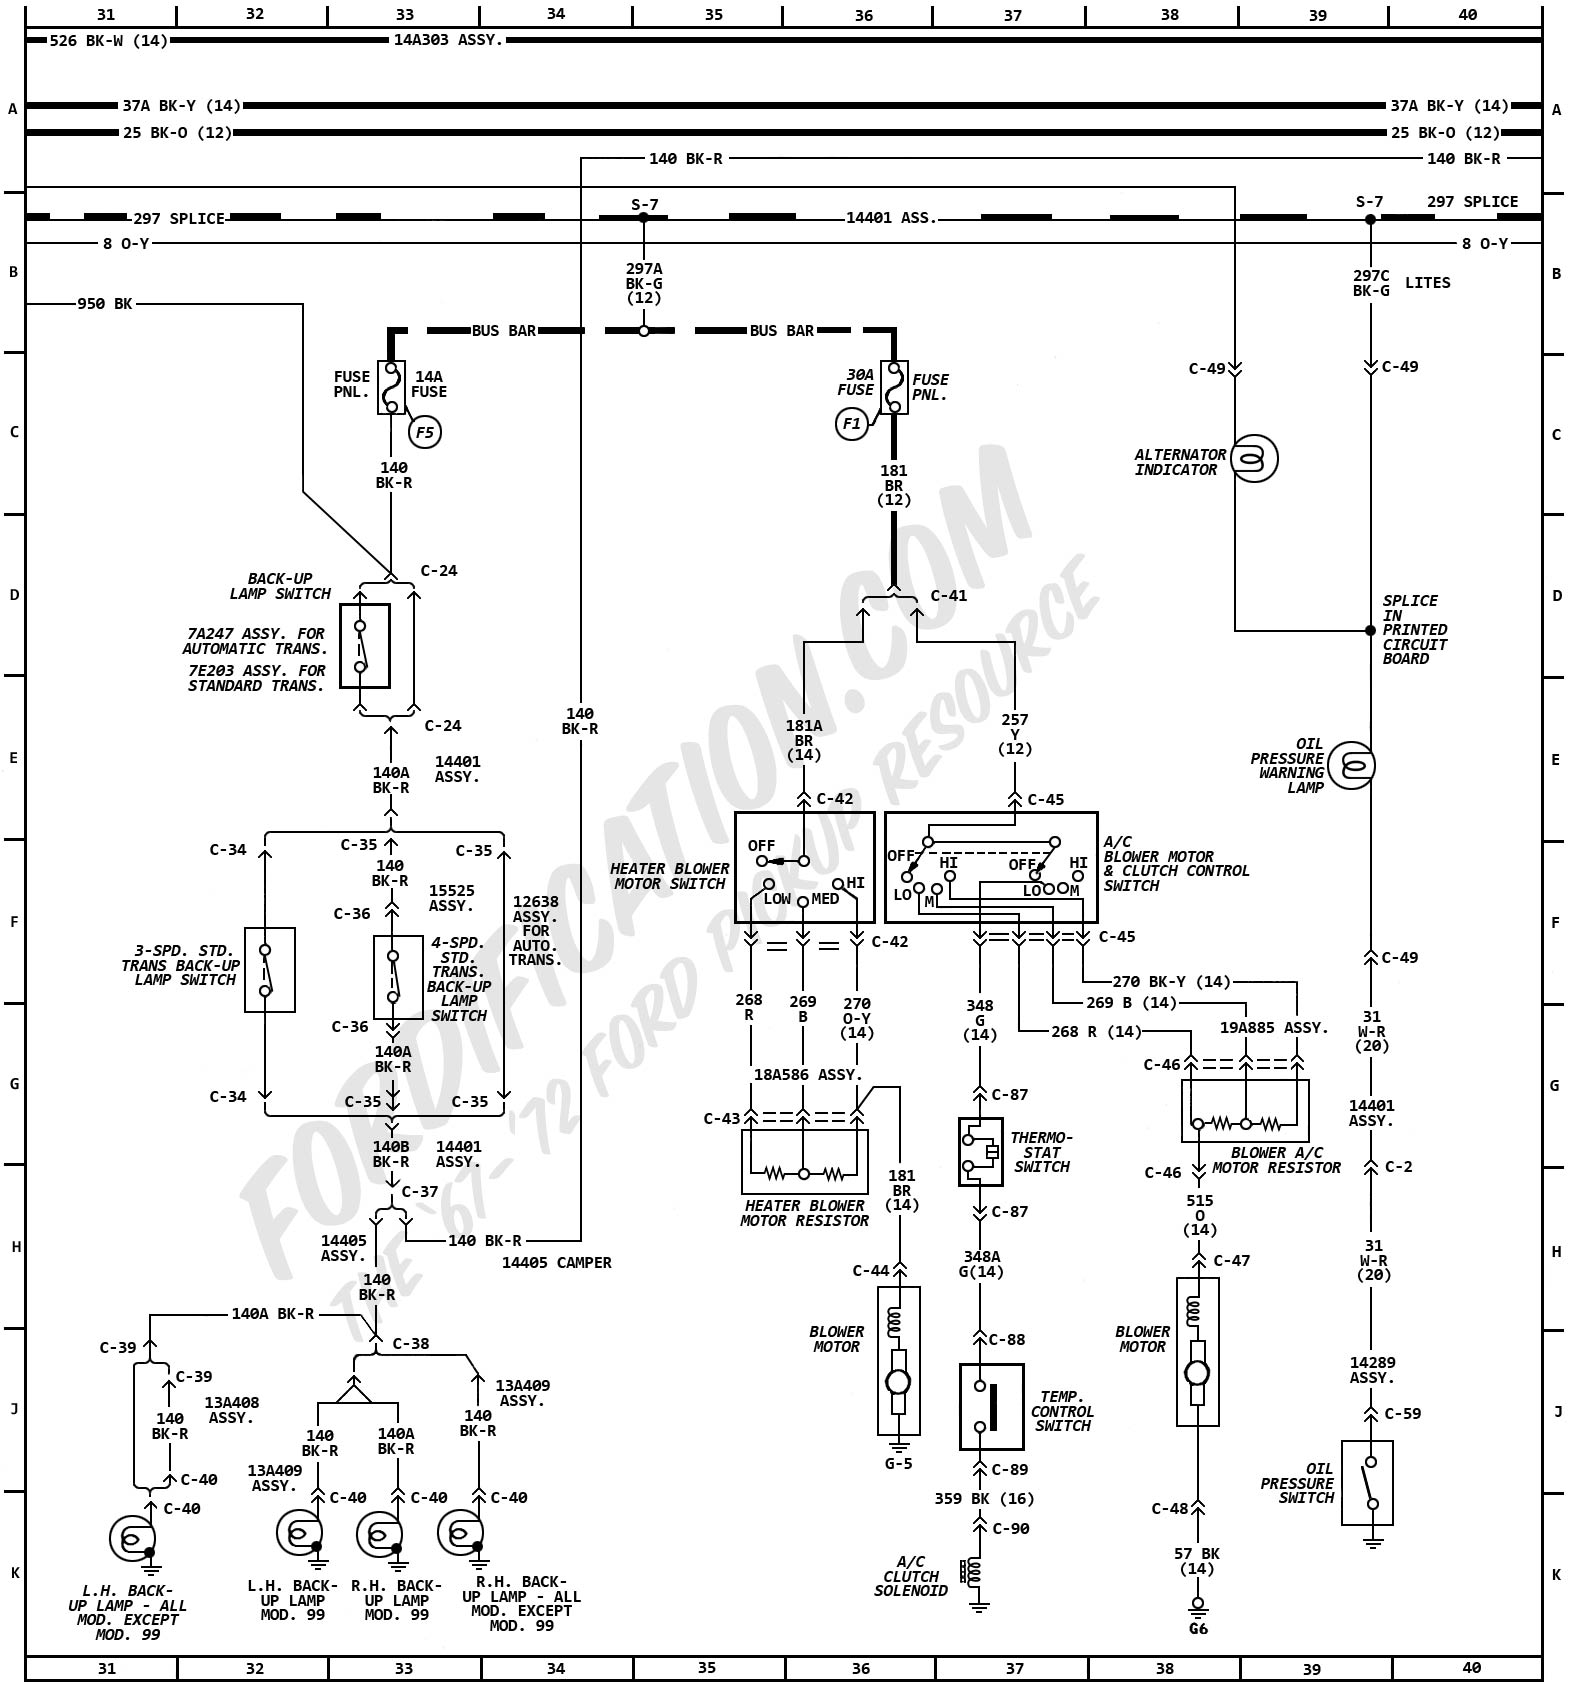 1972MasterWiring_04 1972 ford truck wiring diagrams fordification com wiring diagrams for 2017 ford trucks at webbmarketing.co